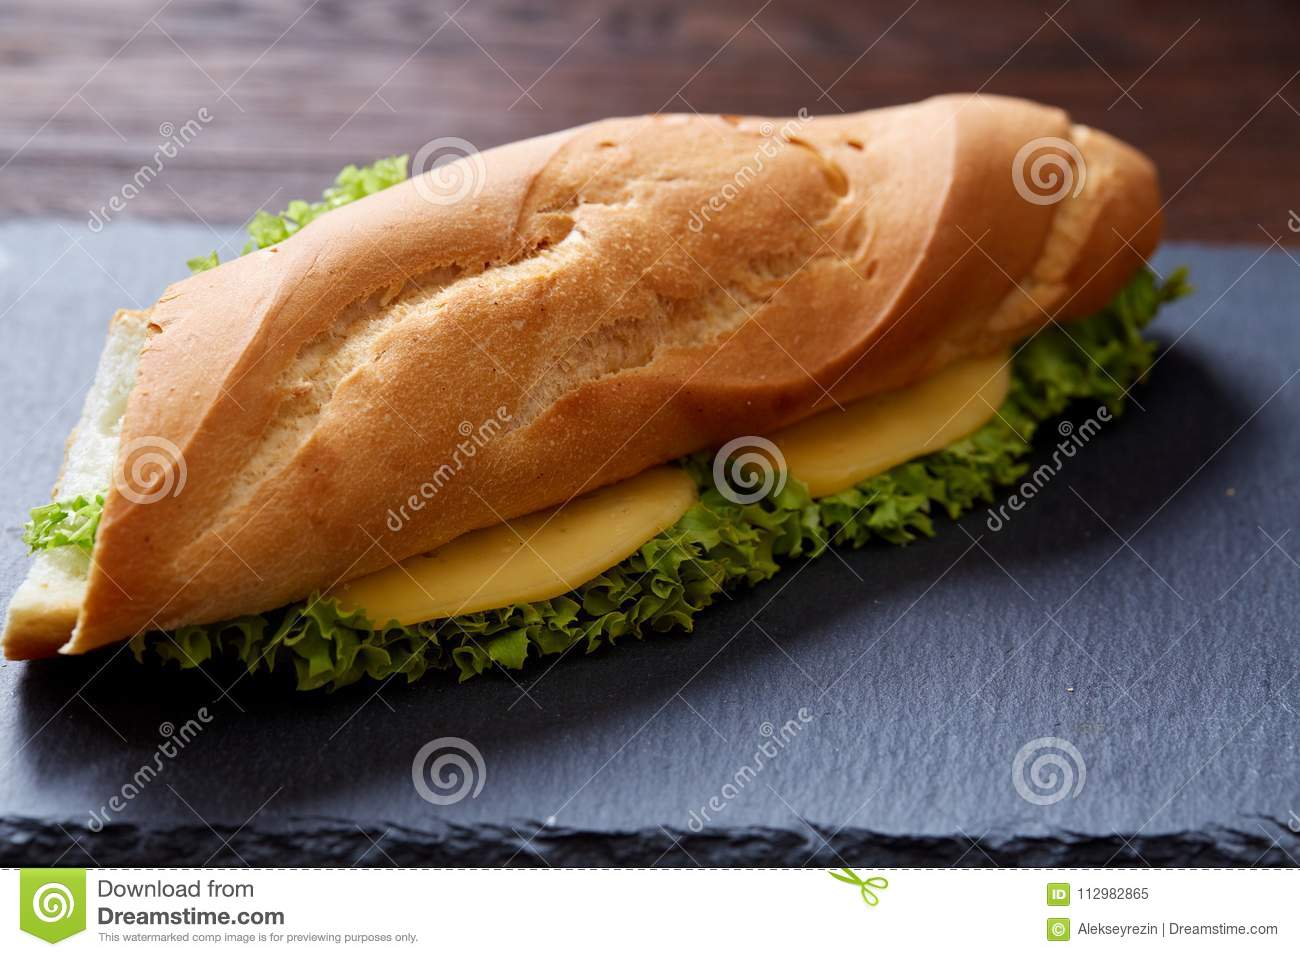 Fresh and tasty sandwich with cheese and vegetables on cutting board over white textured background, selective focus.